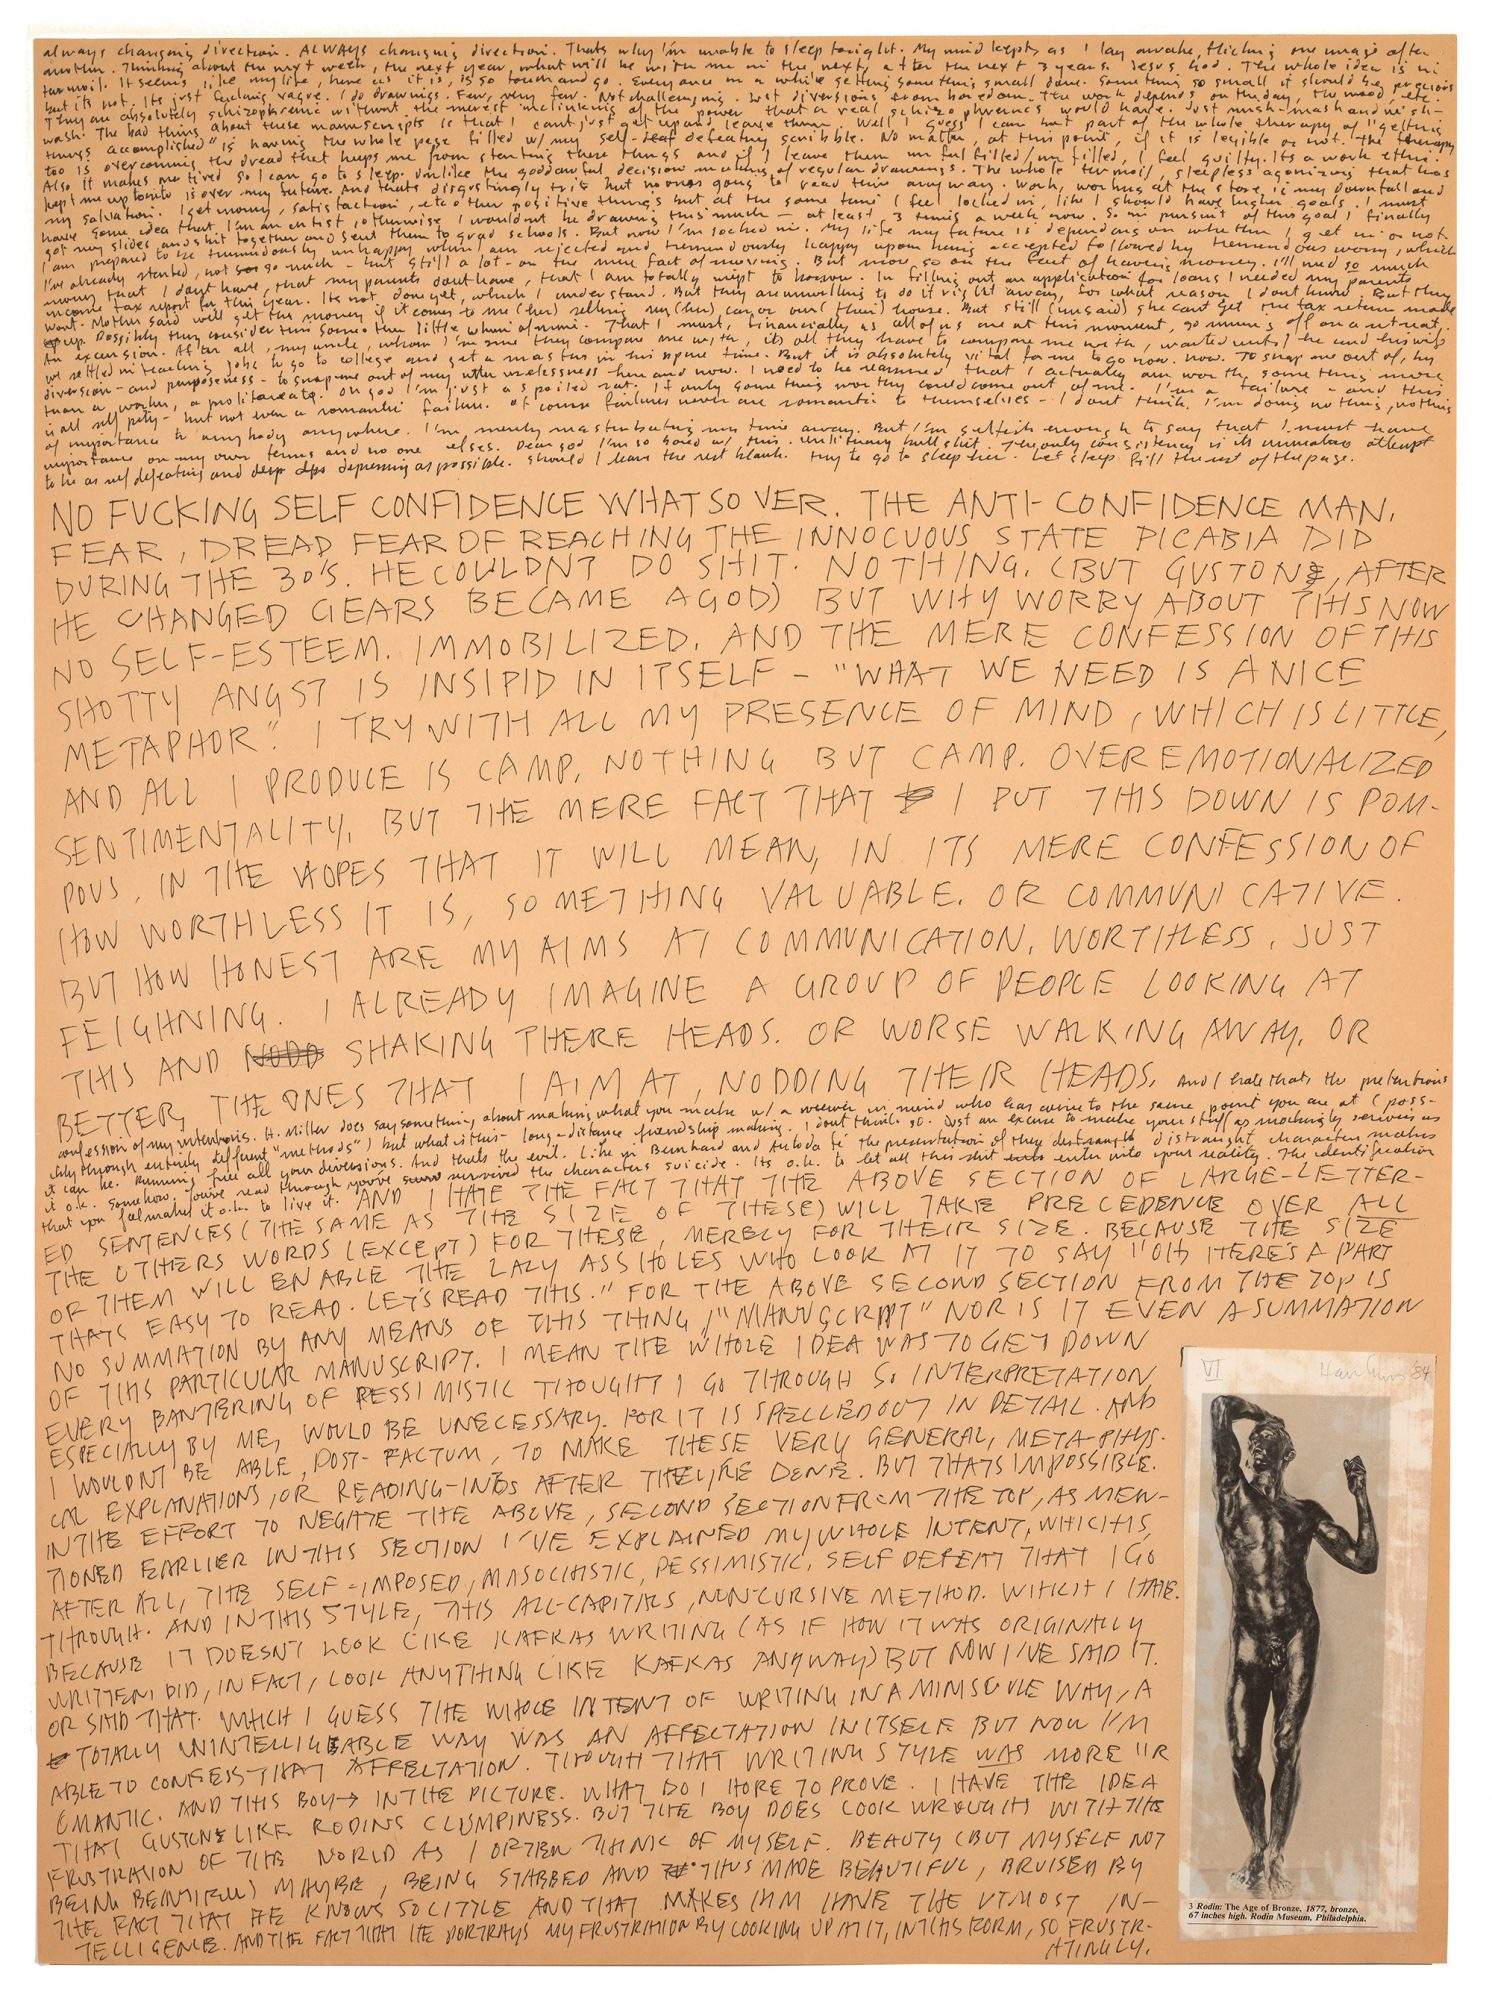 Richard Hawkins, American, b. 1961, Still III: An Illuminating Manuscript, Page 06, 1984. Collage and ink on paper, 23 15/16 x 17 15/16 in. Gift of Elizabeth Mize Currie, Class of 1978. M.2015.12.1